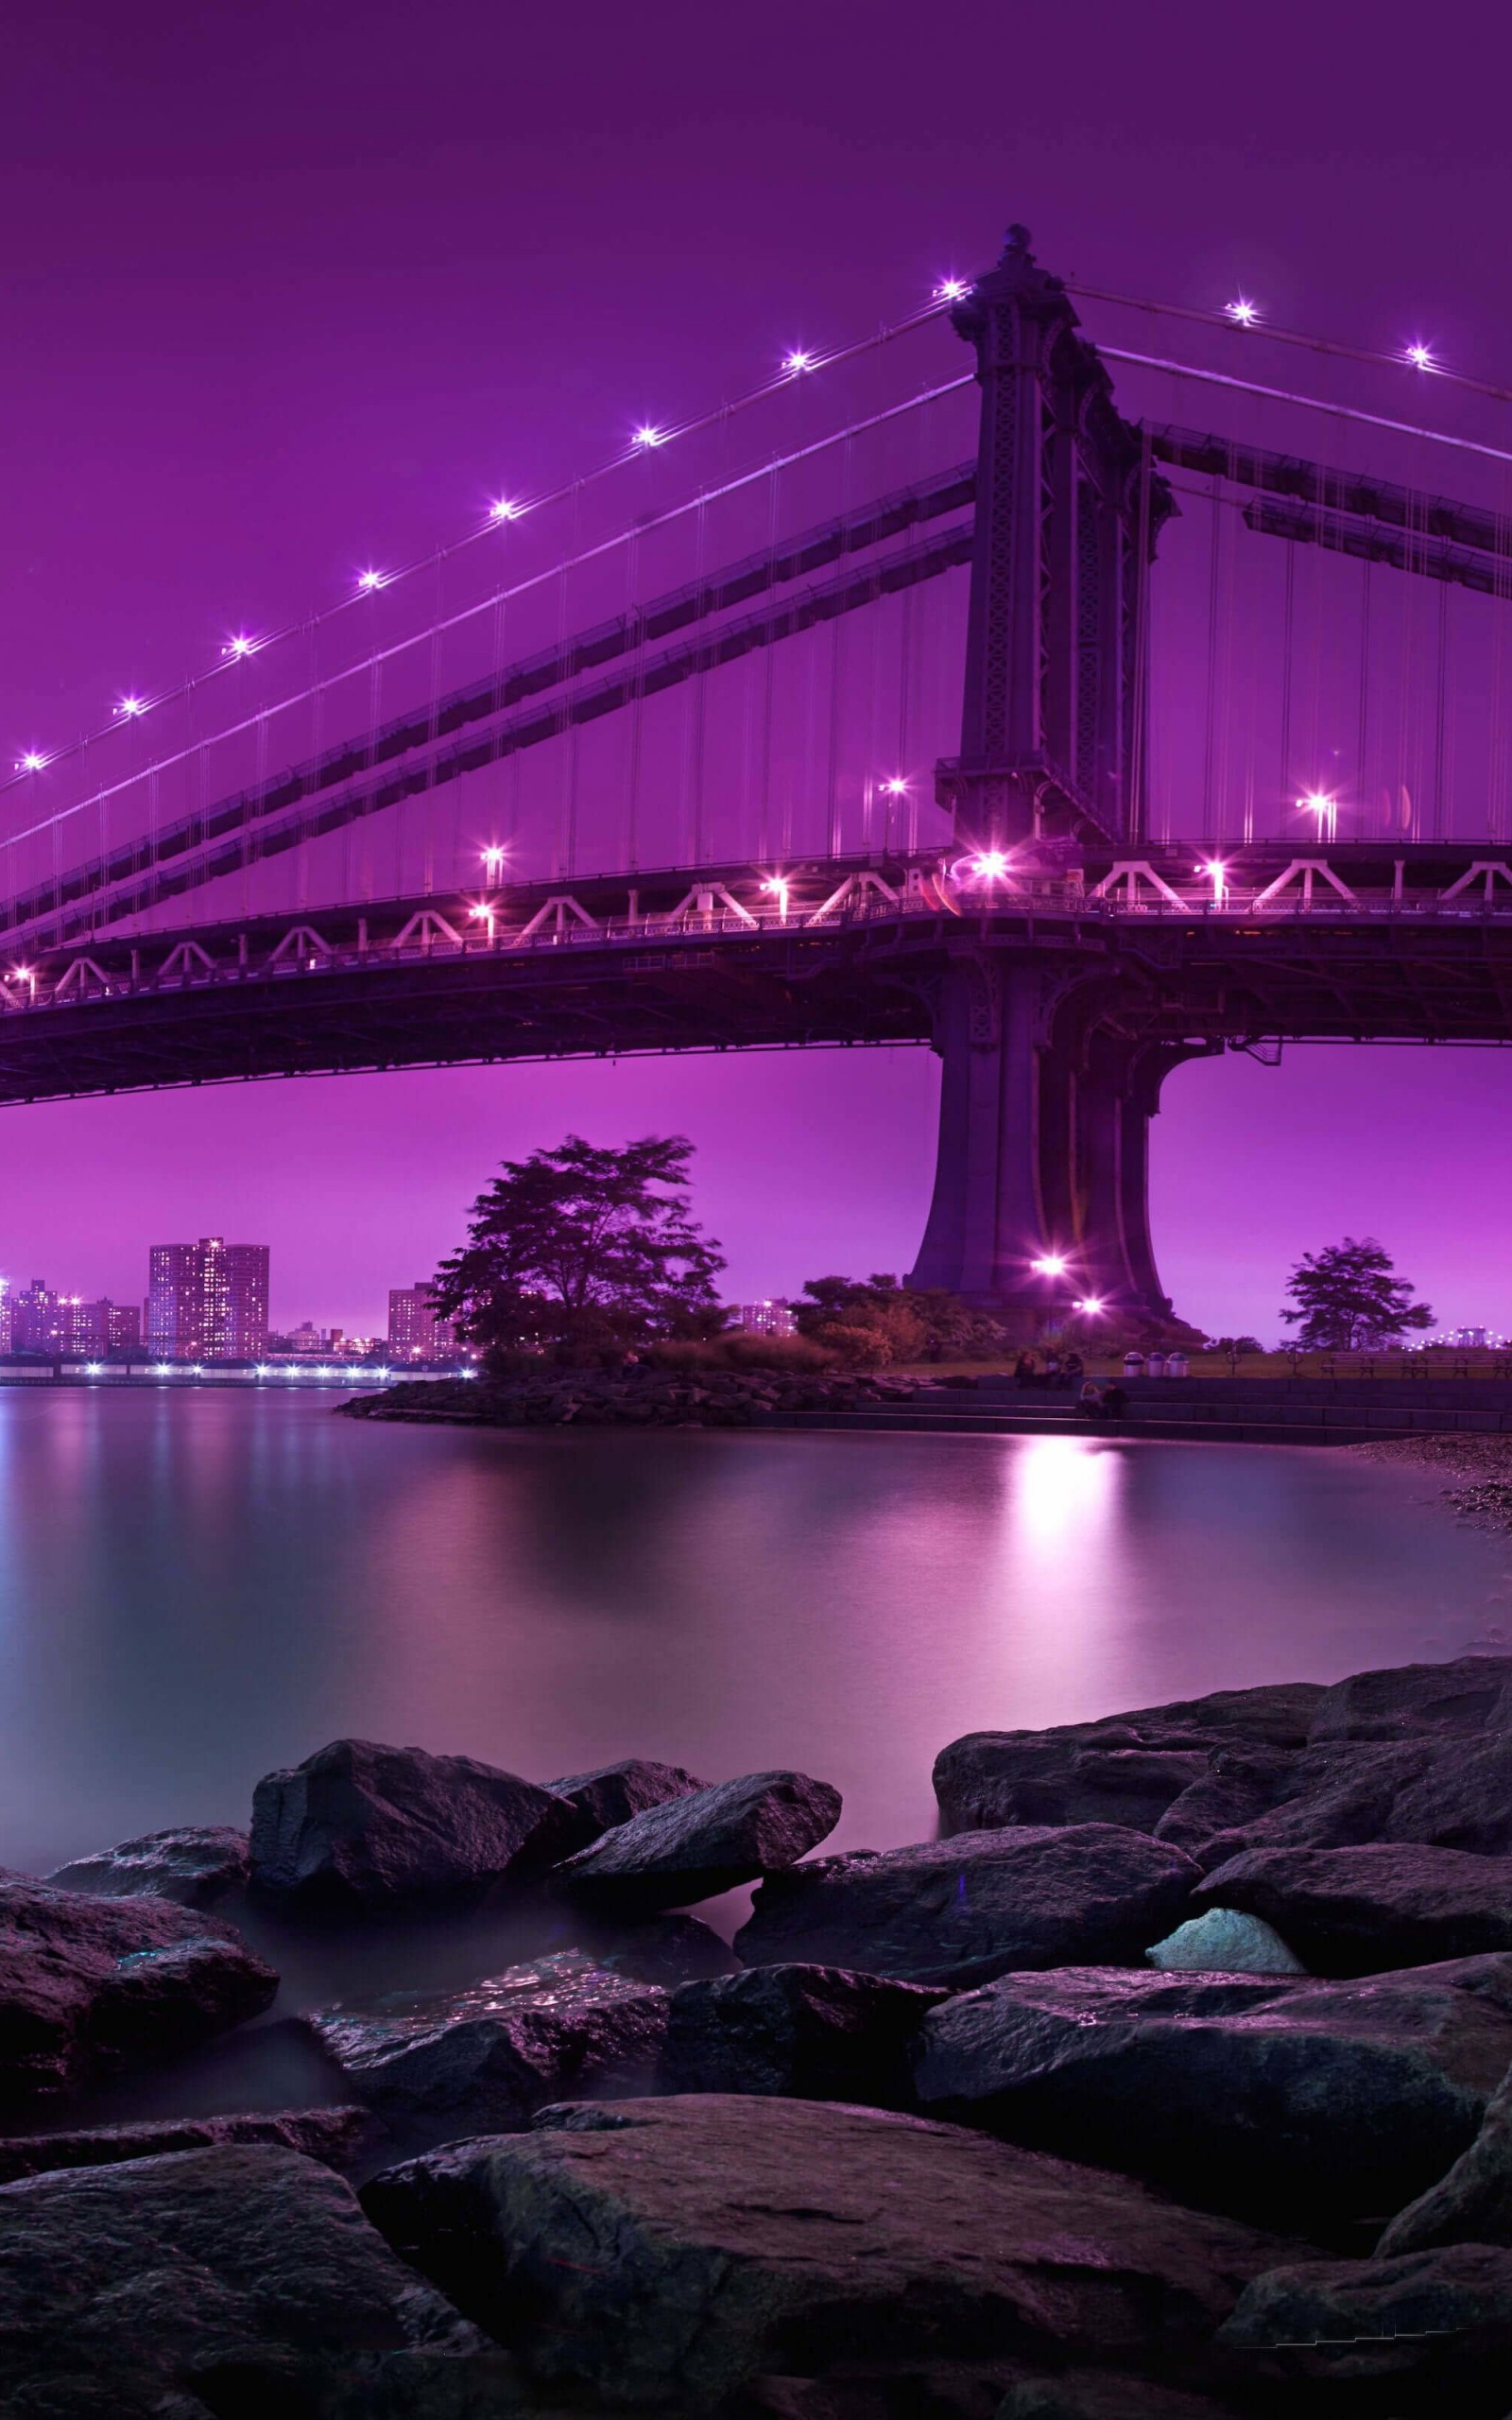 Brooklyn Bridge by night Wallpaper for Amazon Kindle Fire HDX 8.9